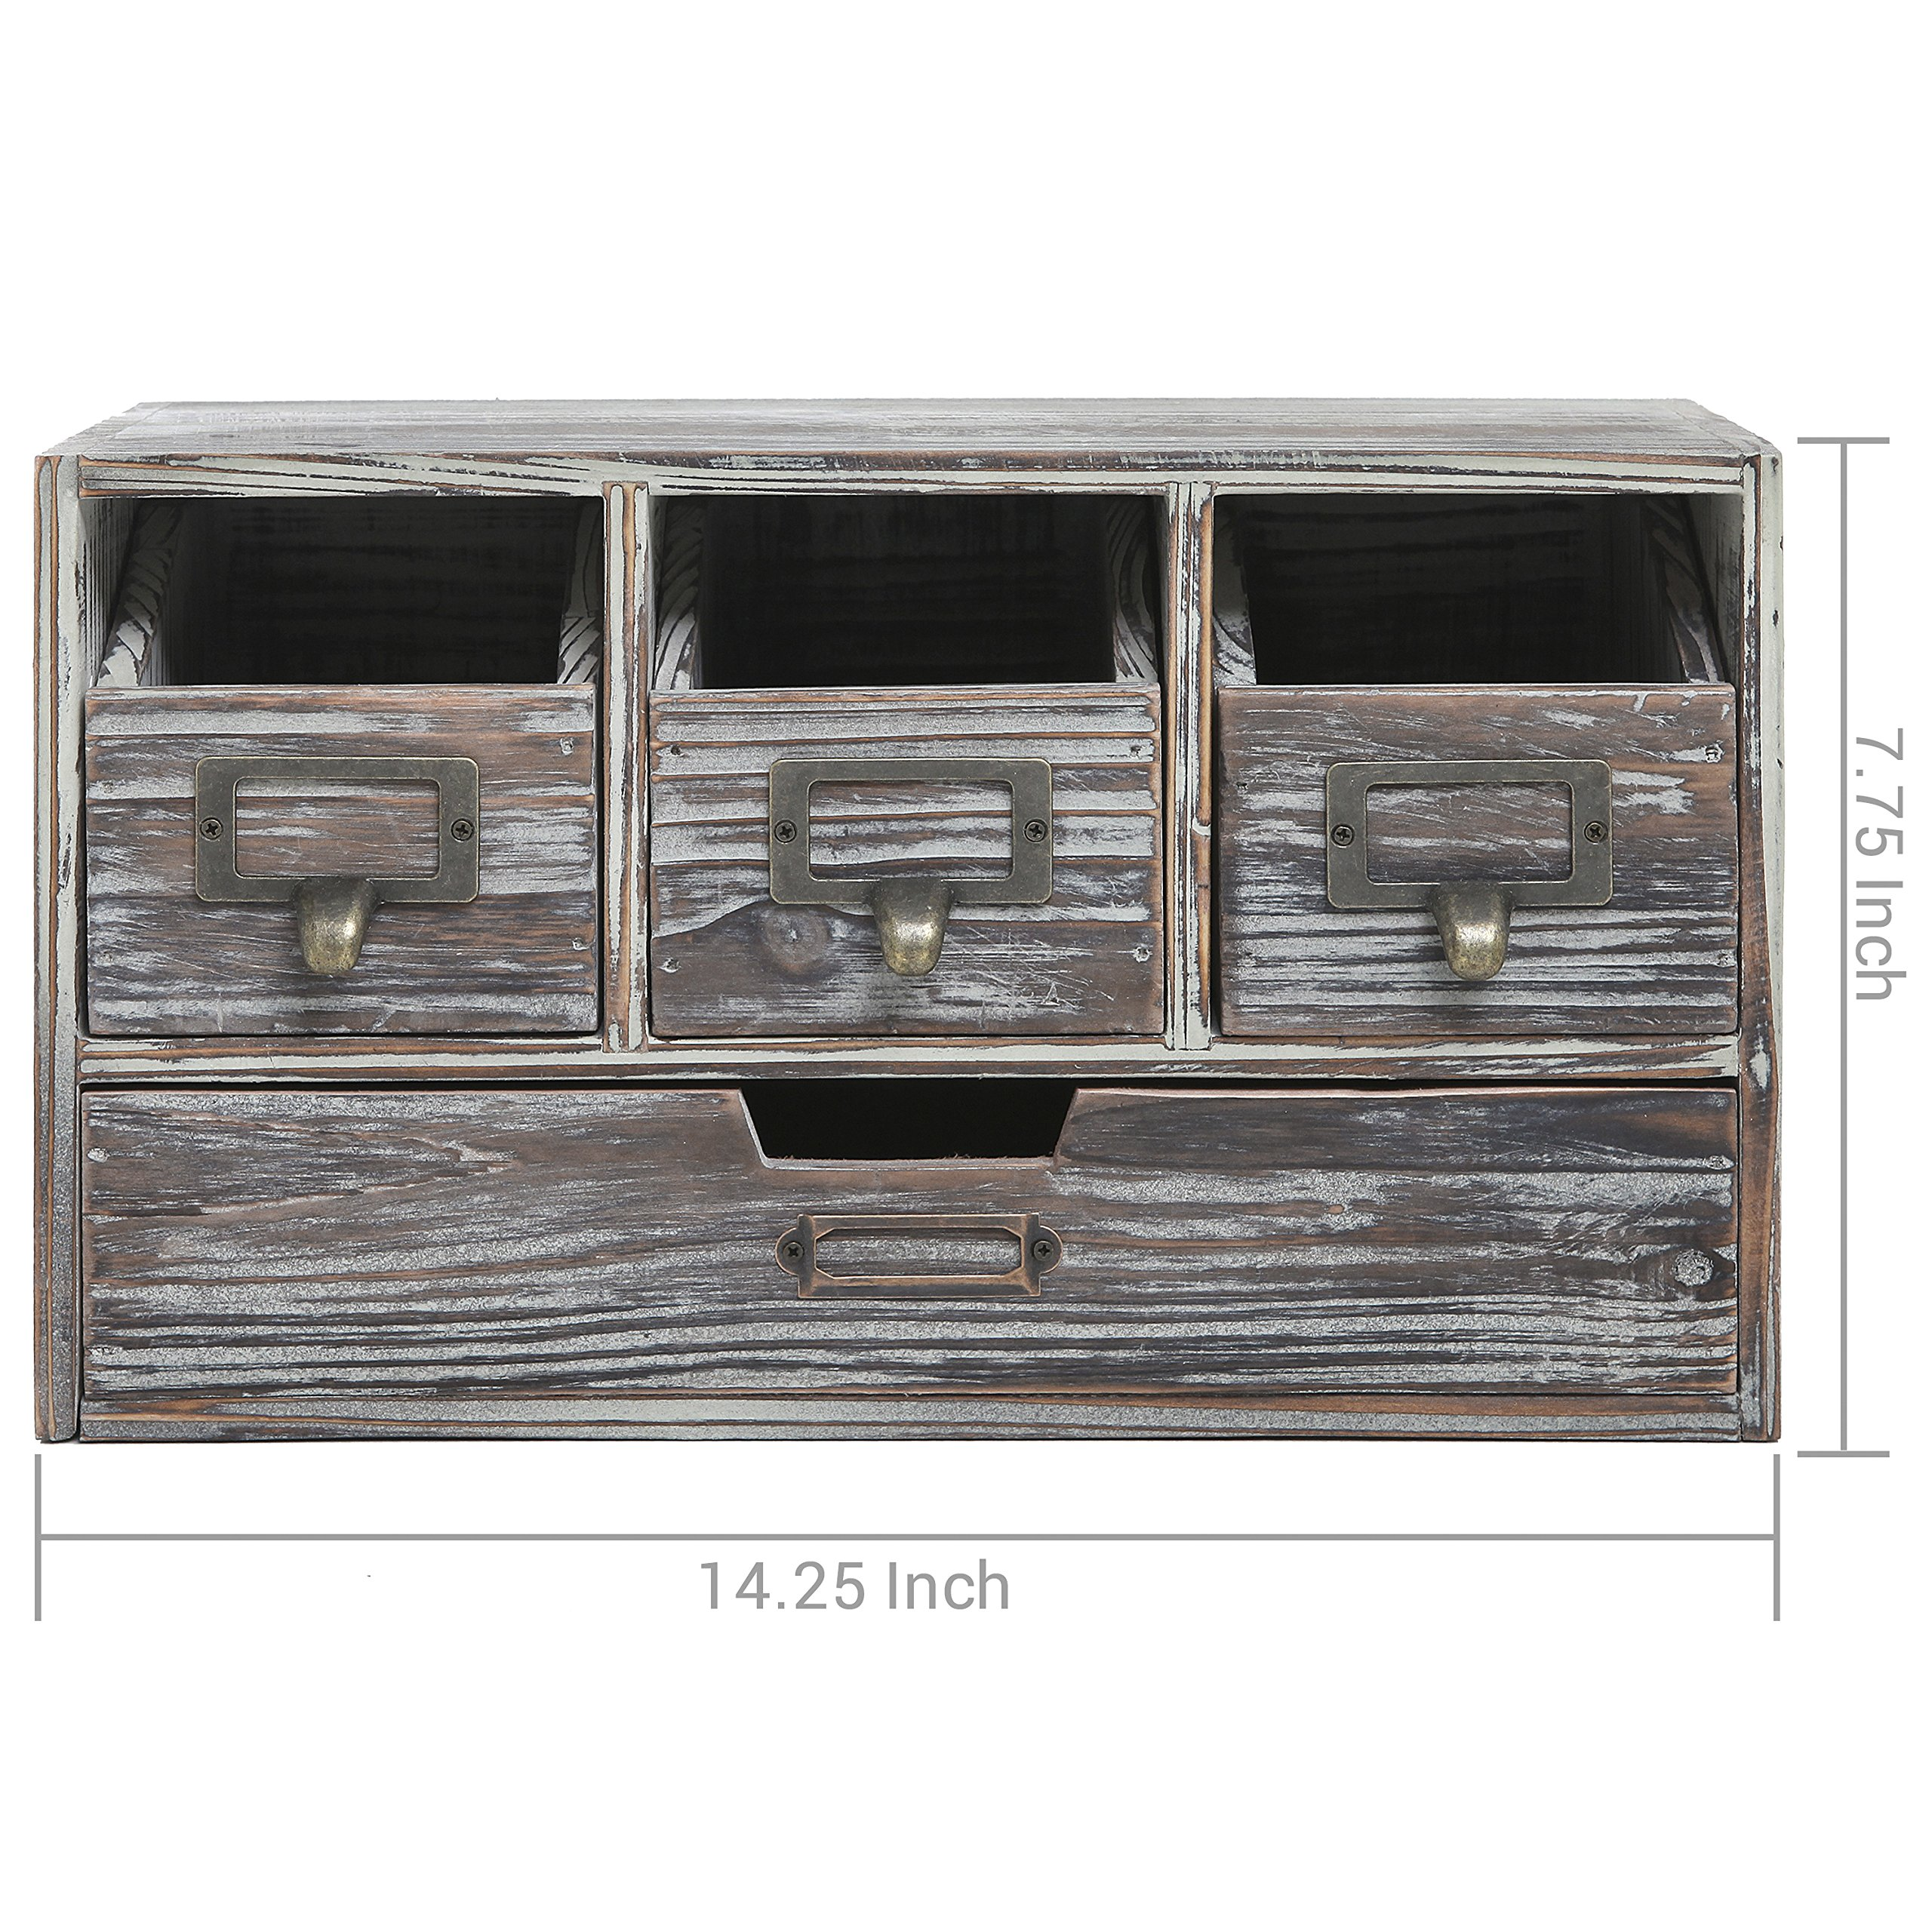 Rustic Brown Torched Wood Finish Desktop Office Organizer Drawers / Craft Supplies Storage Cabinet by MyGift (Image #7)